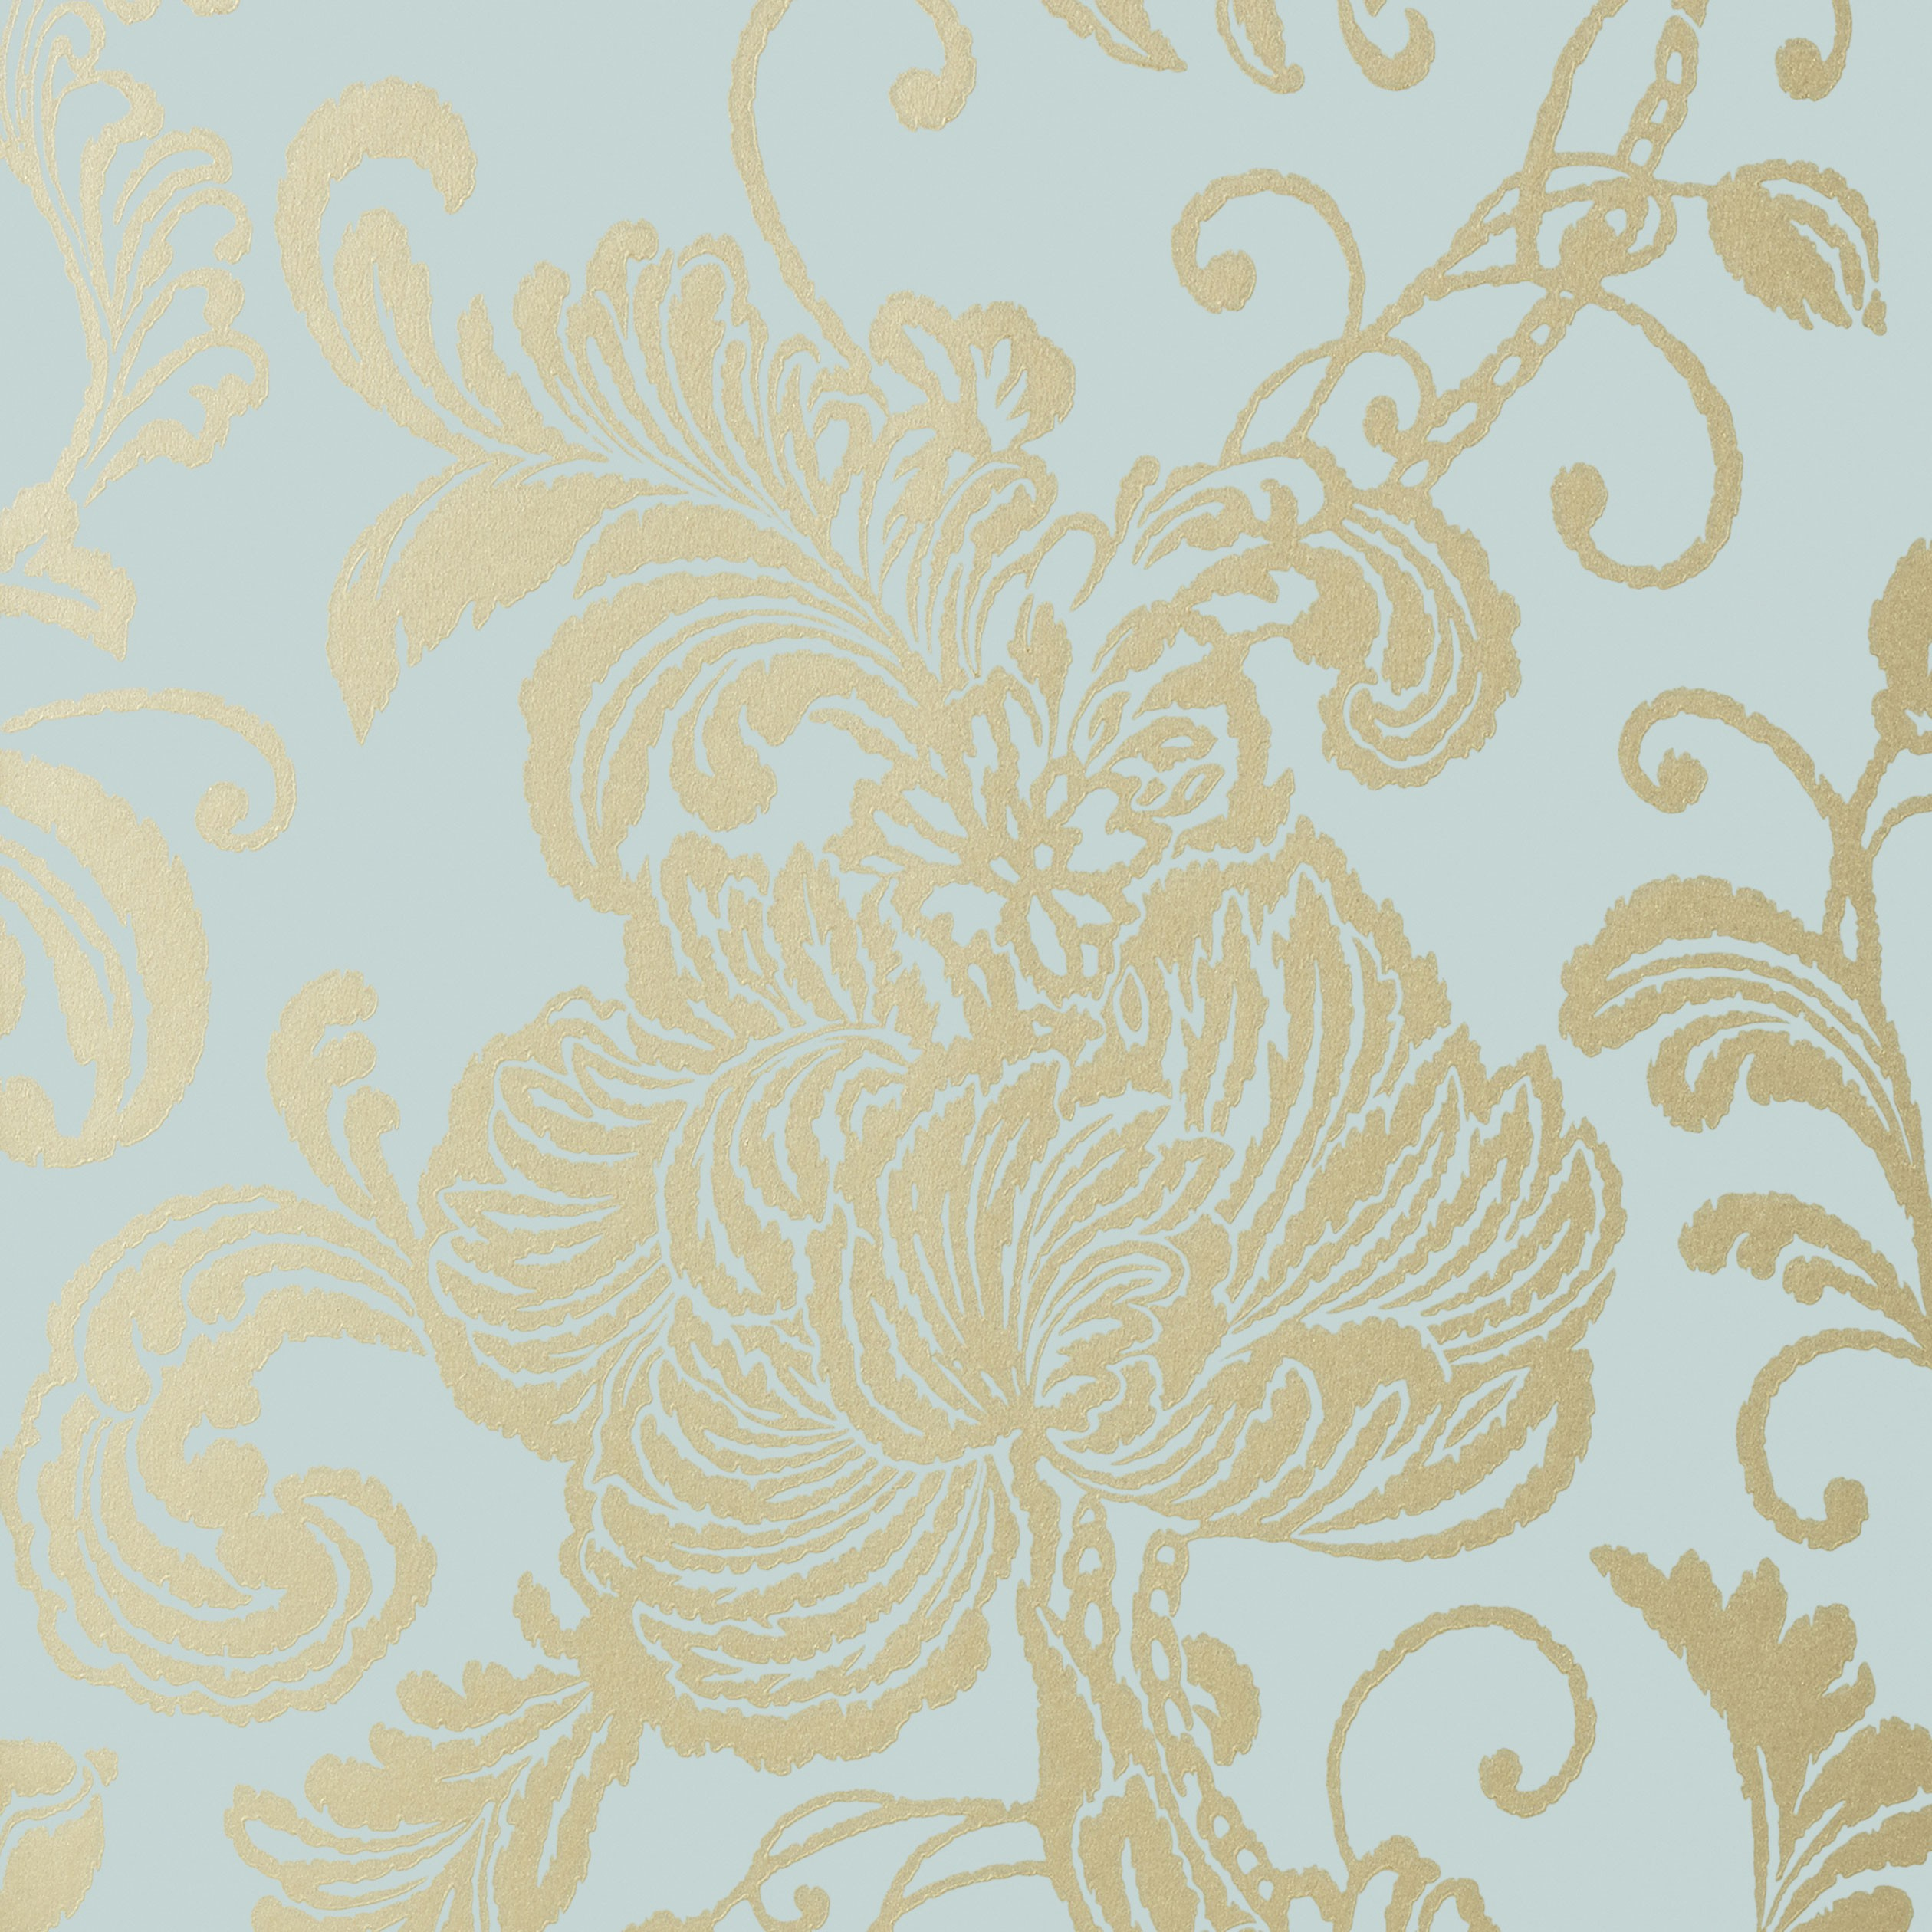 Metallic Gold Wallpaper Verey Floral Damask Metallic Gold On Aqua Blue Af At6010